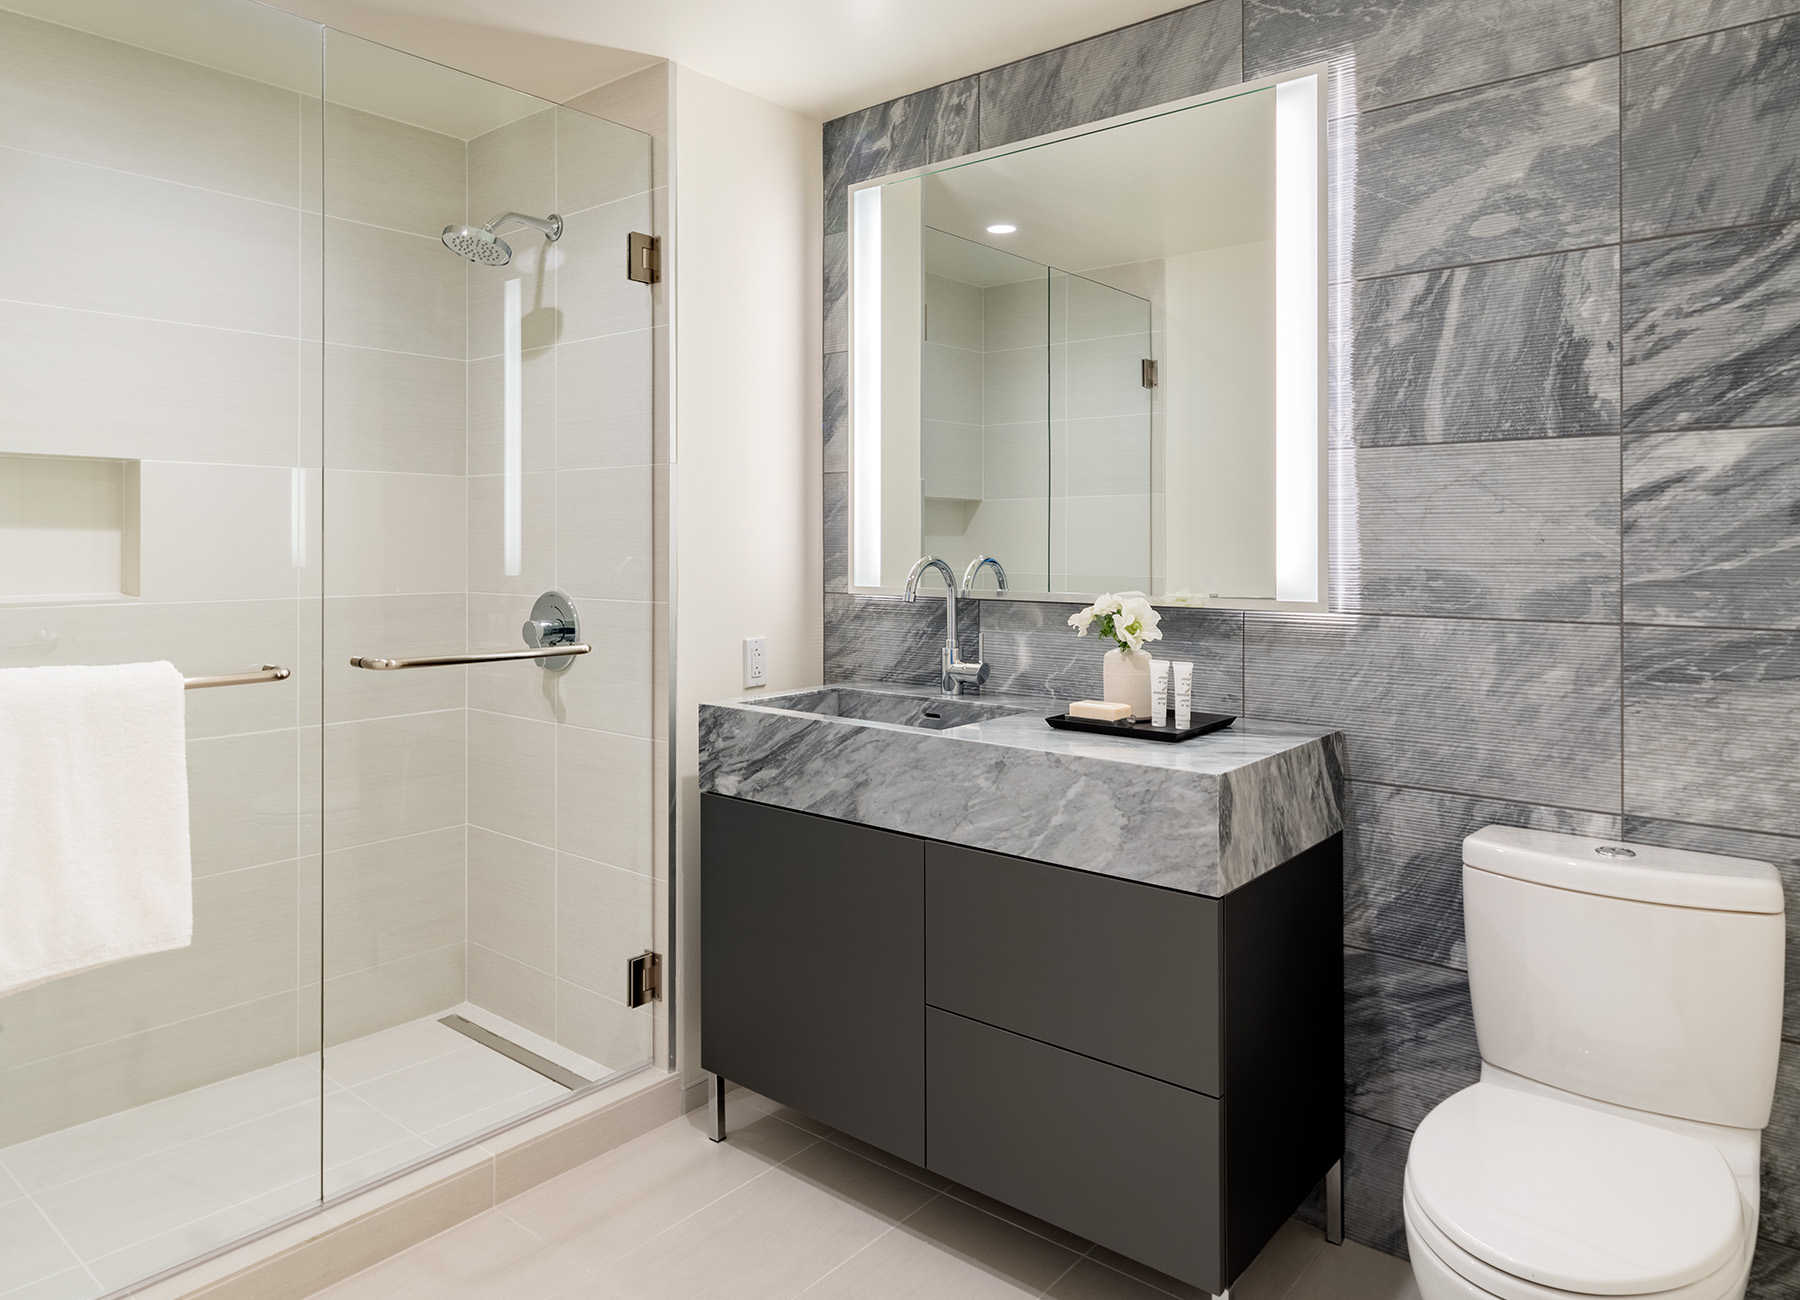 Bathroom with dark gray marble sink and white tile shower